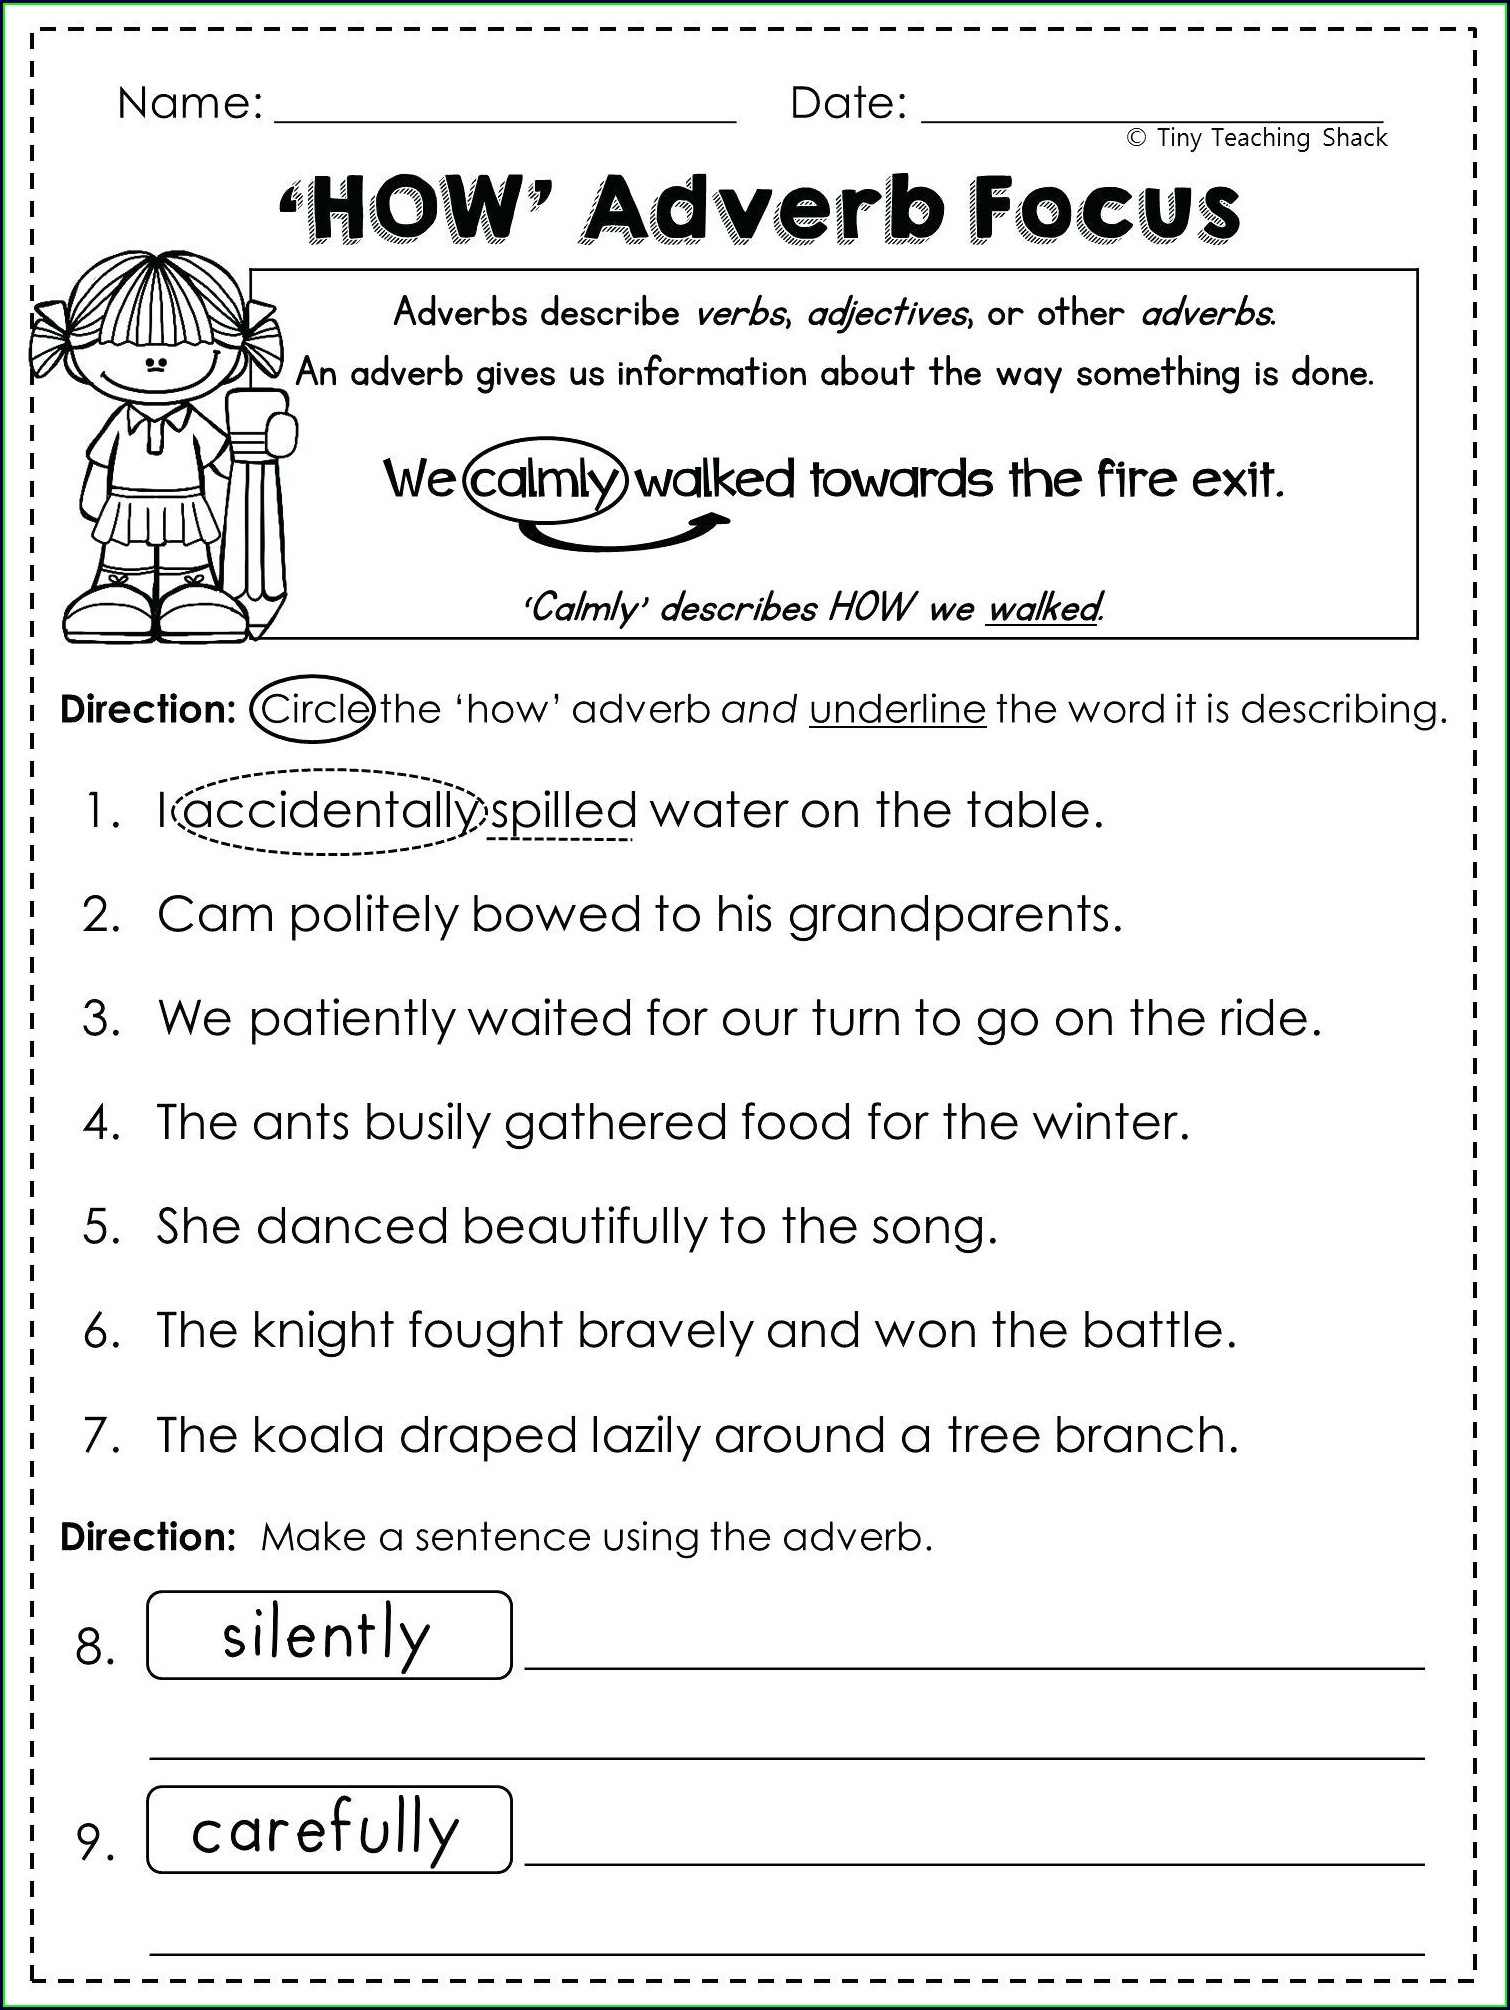 4th Grade Adverbs Worksheet For Grade 4 With Answers